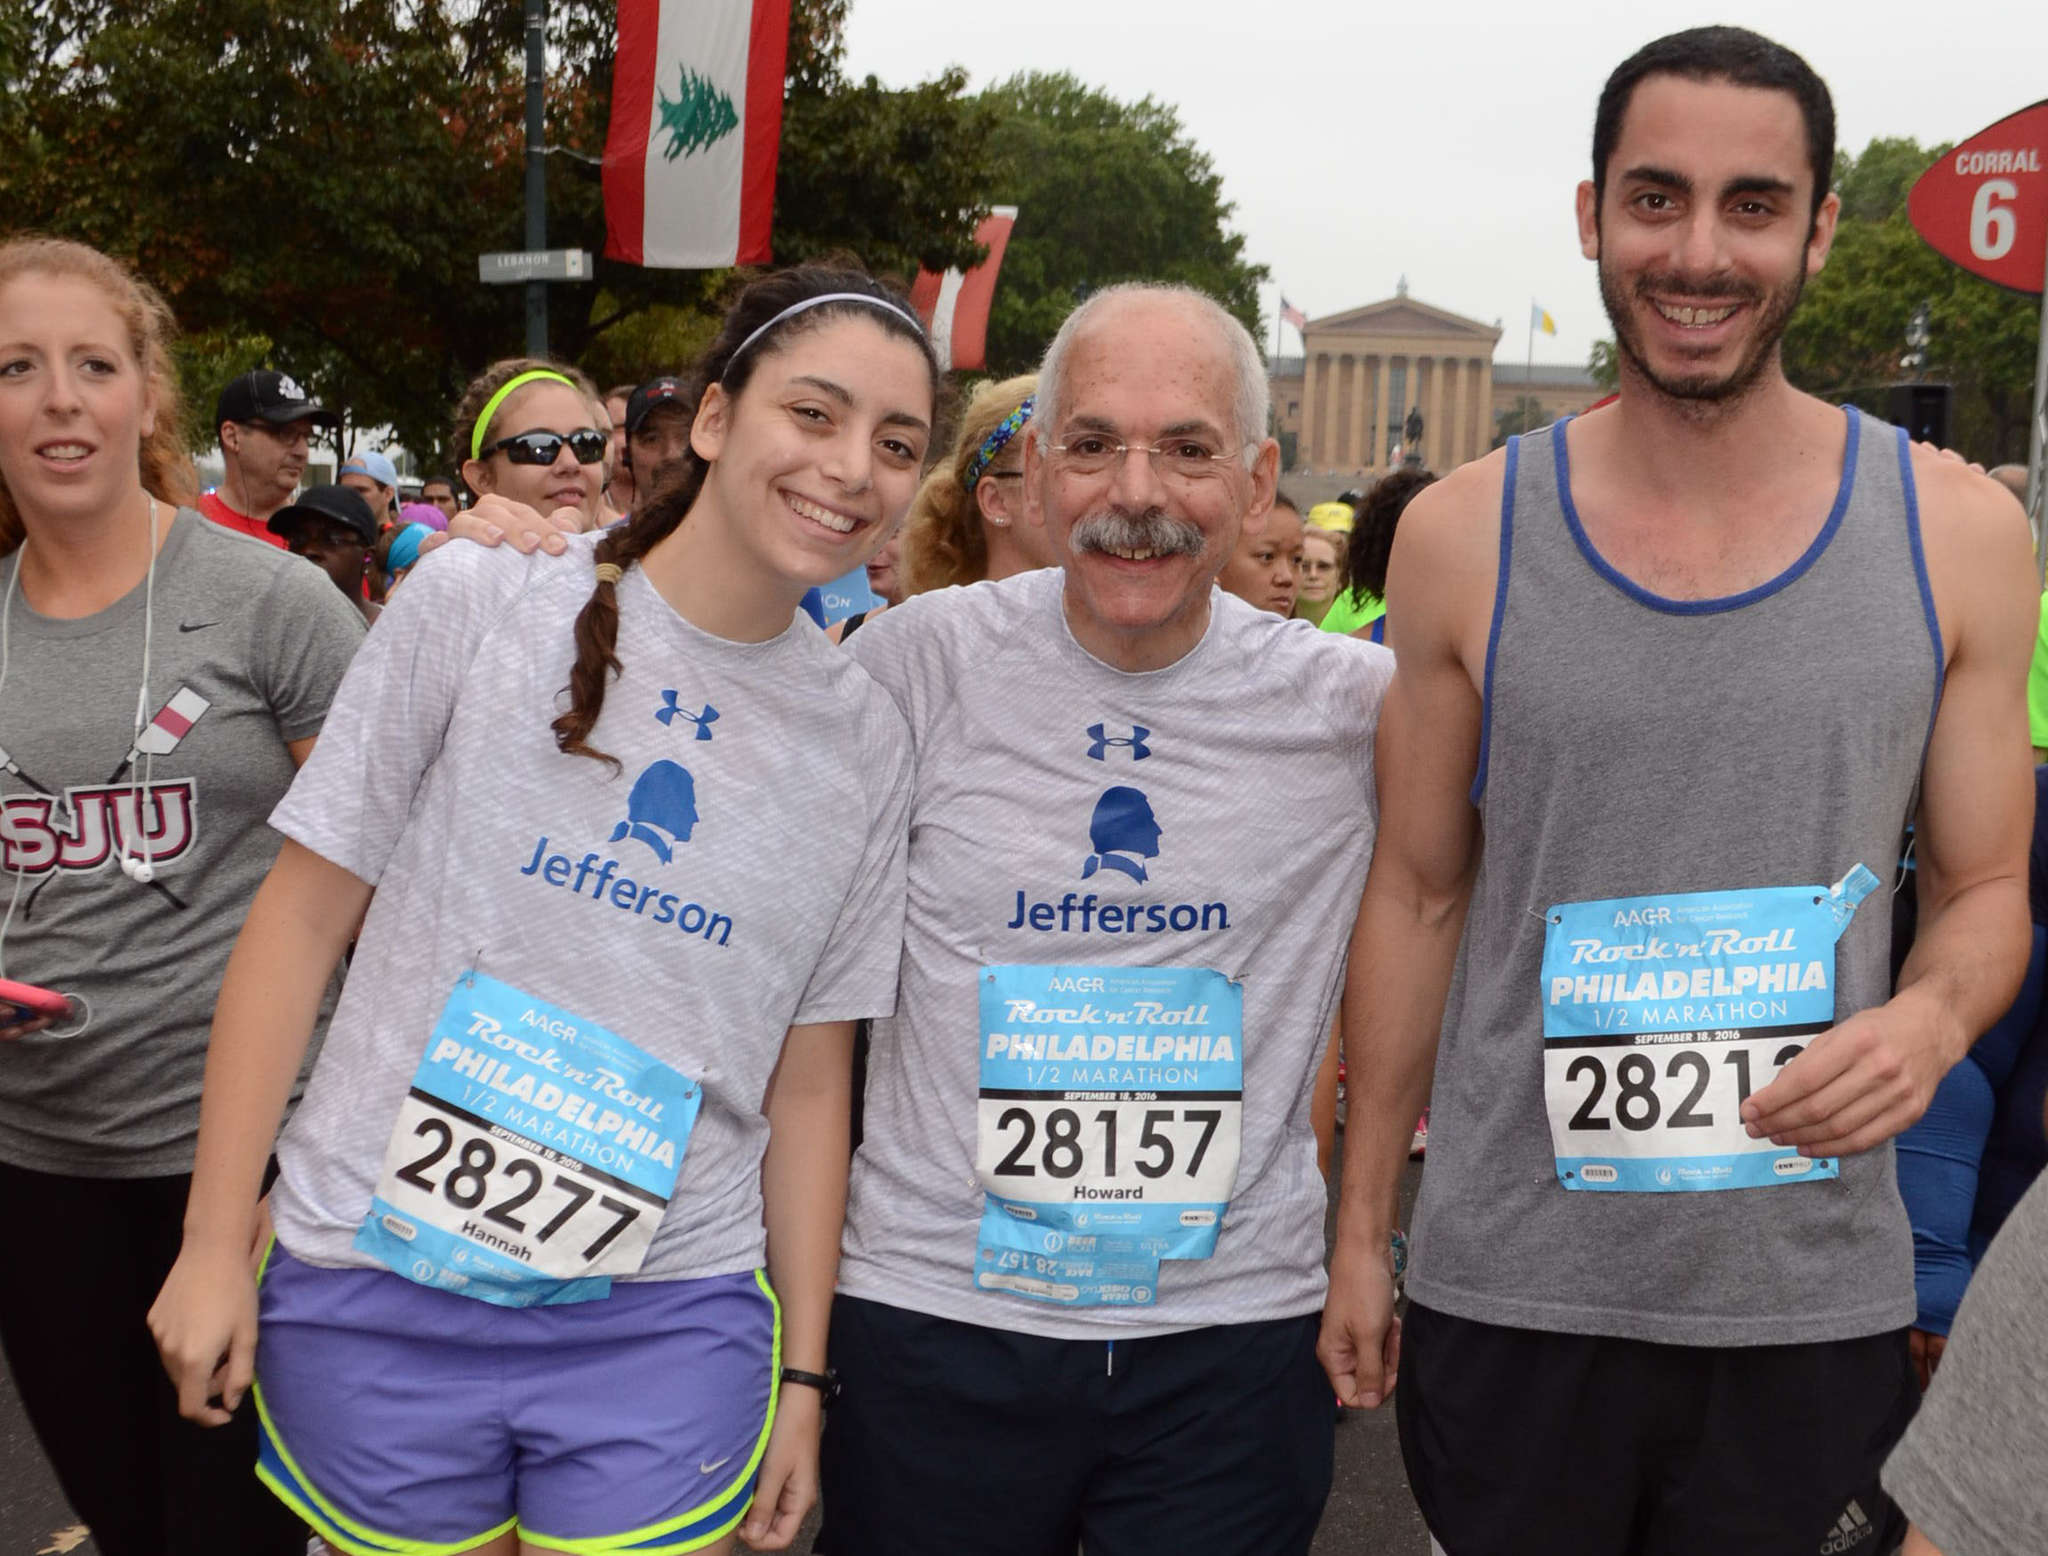 Howard Weitz (center) with daughter Hannah and son Ben at the 2016 Rock ´n´ Roll Philadelphia Half Marathon on Sept. 18. Weitz completed the run in 2 hours, 48 minutes, 6 seconds.